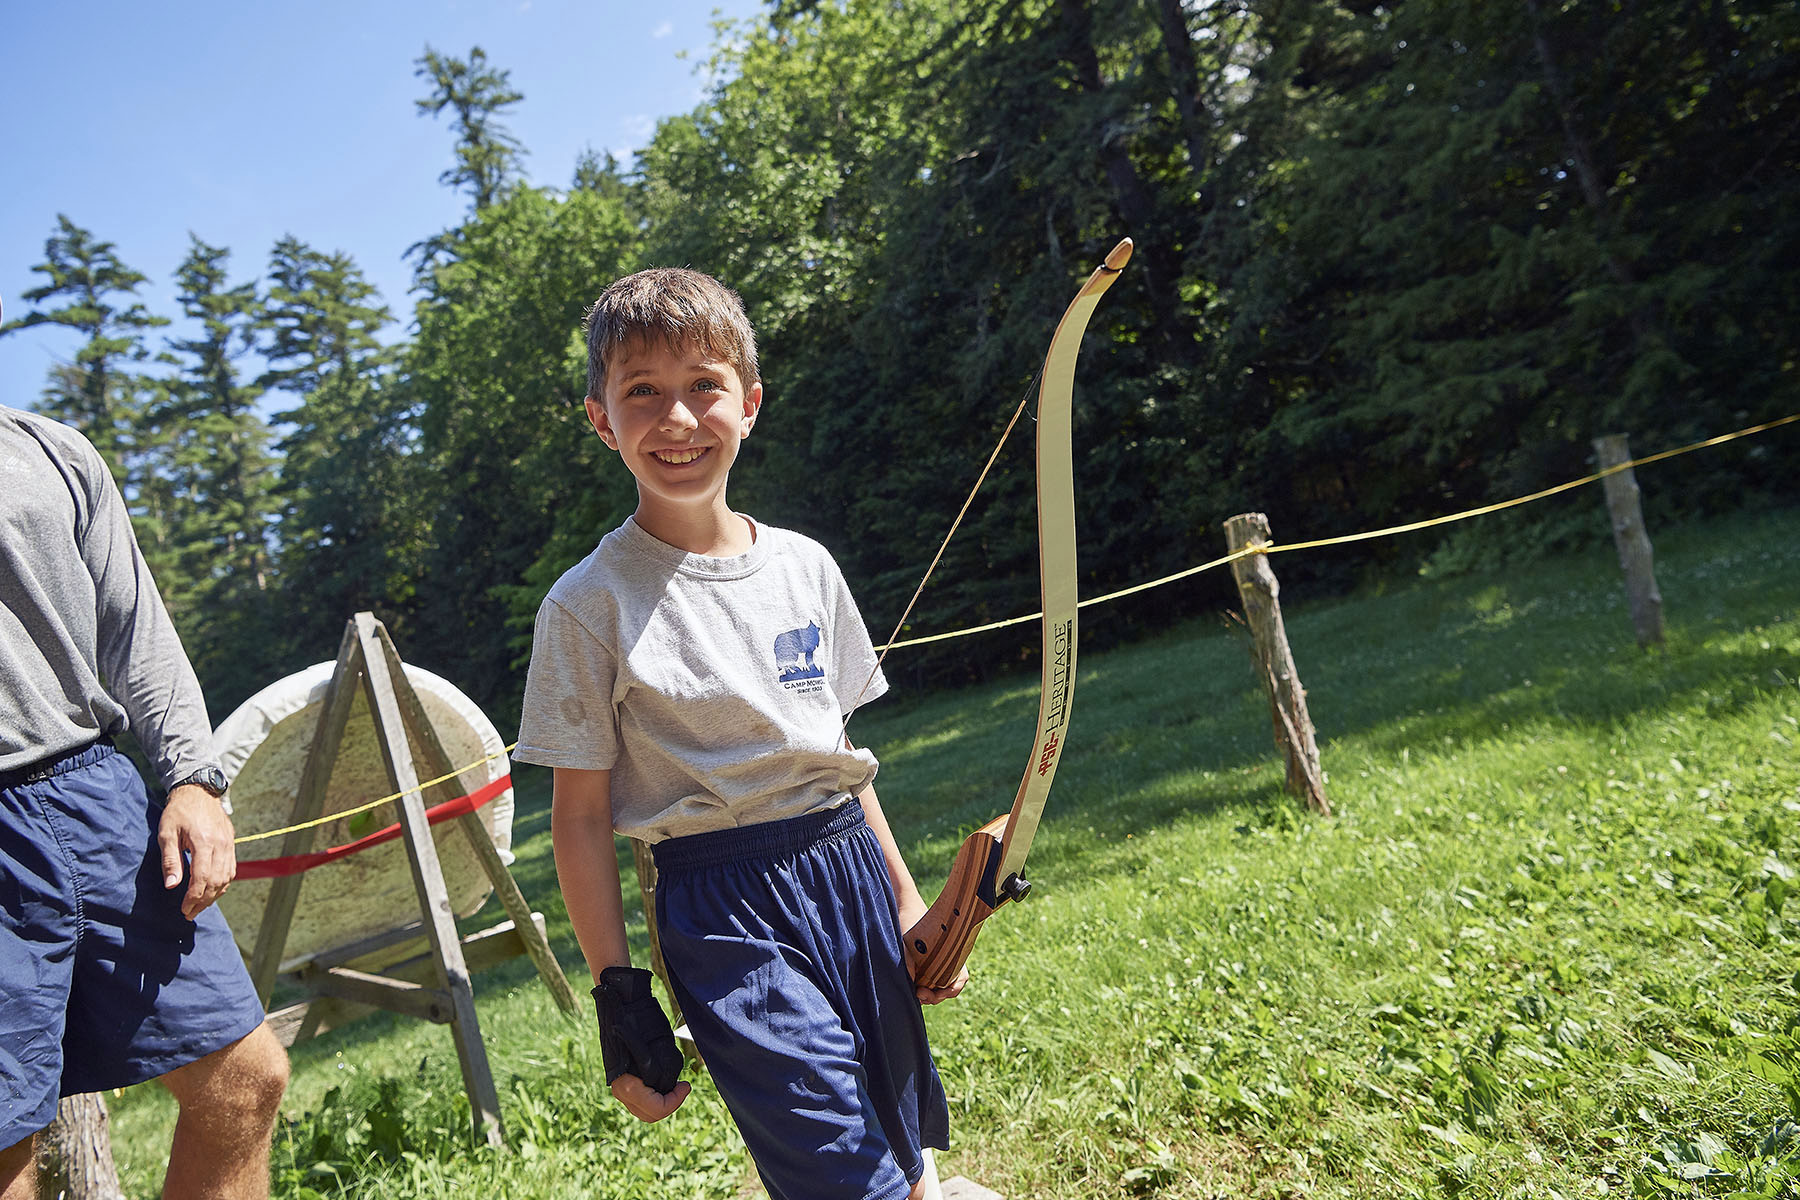 Archery at Camp Mowglis